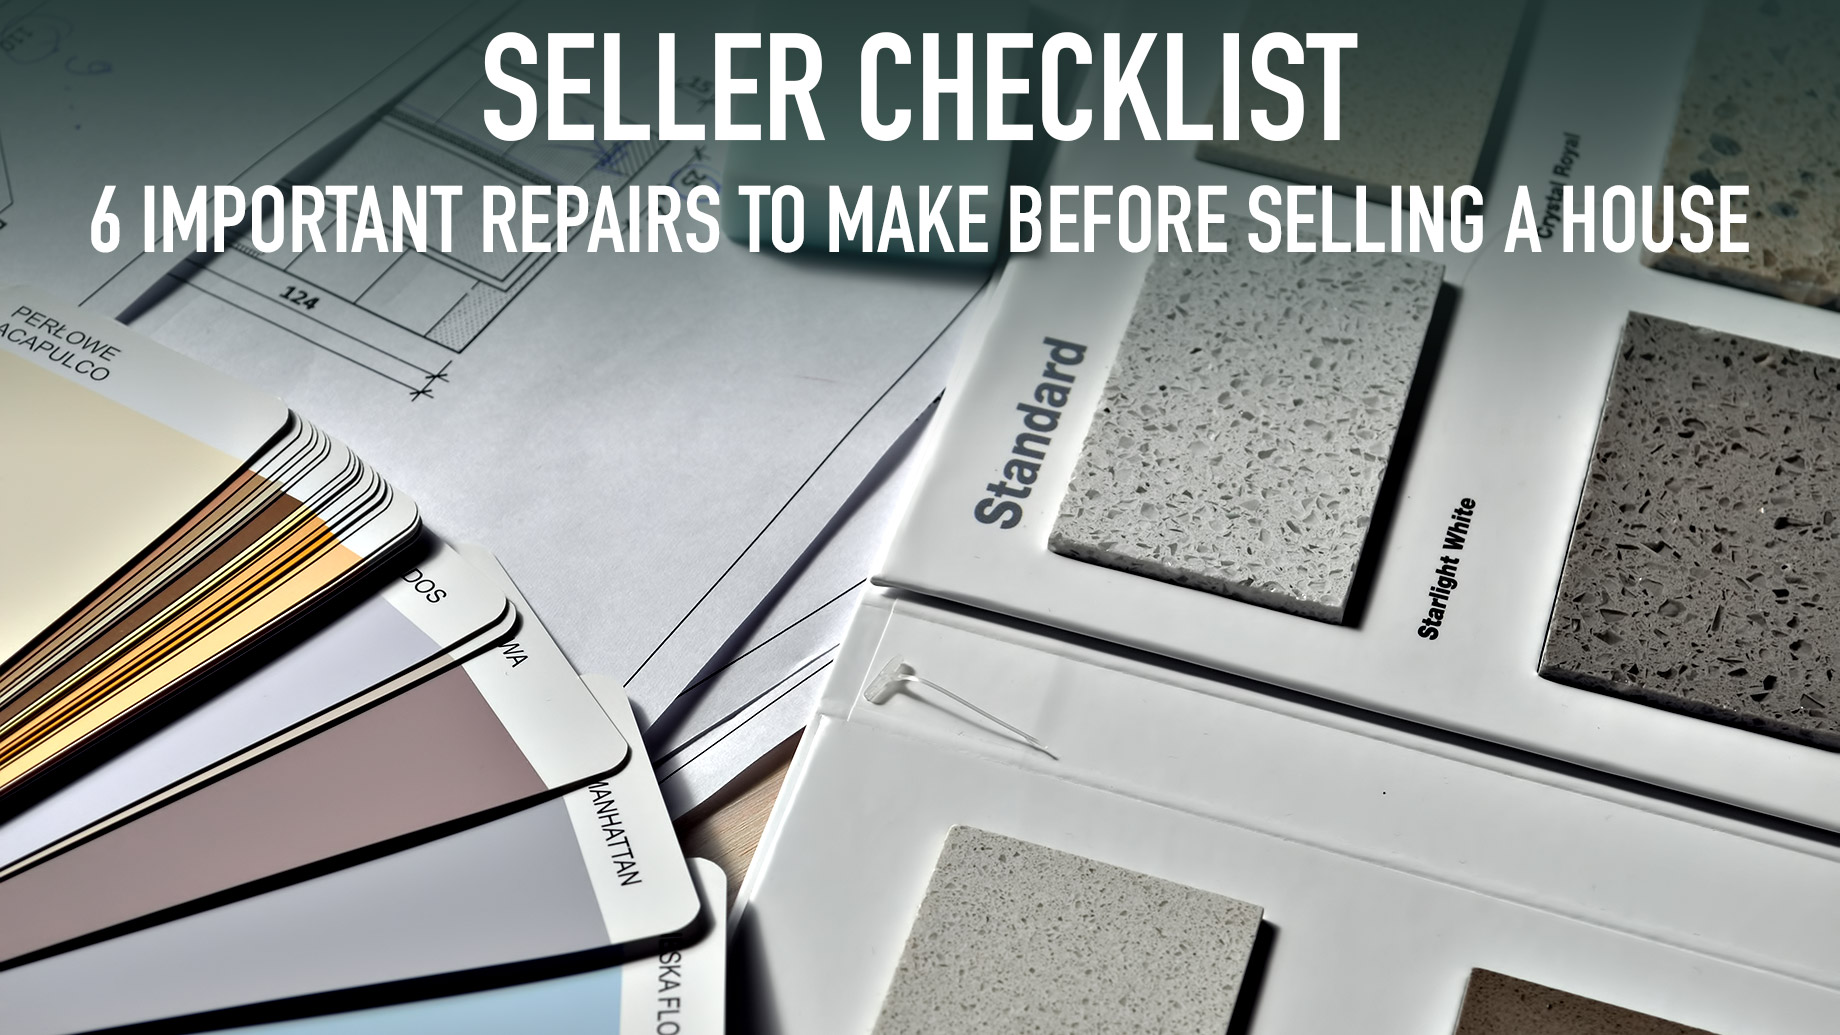 Seller Checklist - 6 Important Repairs to Make Before Selling a House